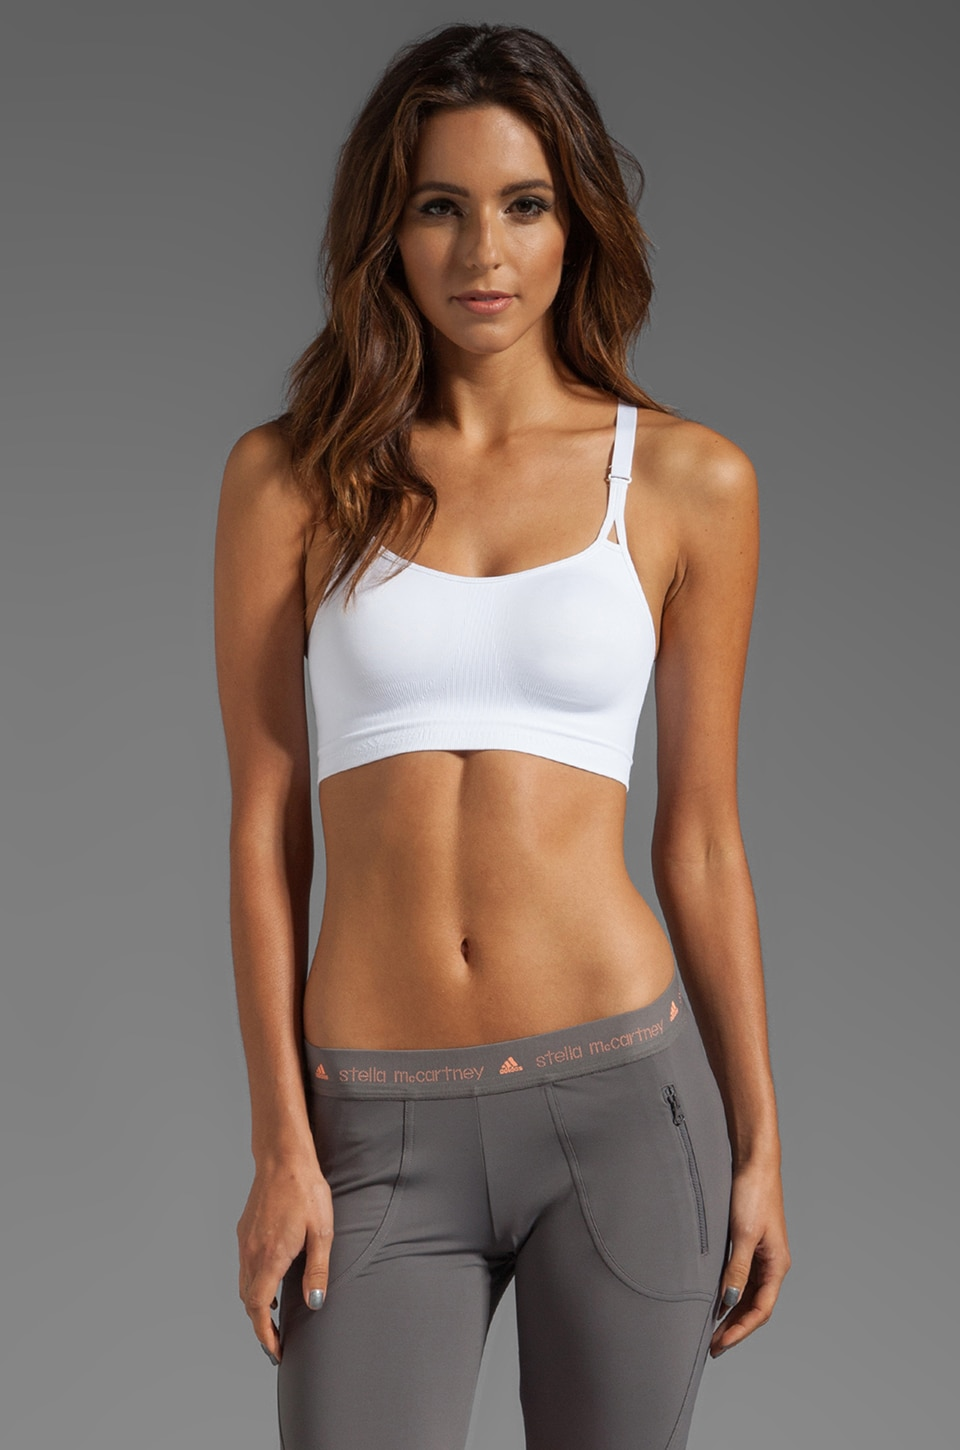 adidas by Stella McCartney SL Perf Bra in White/Warnin